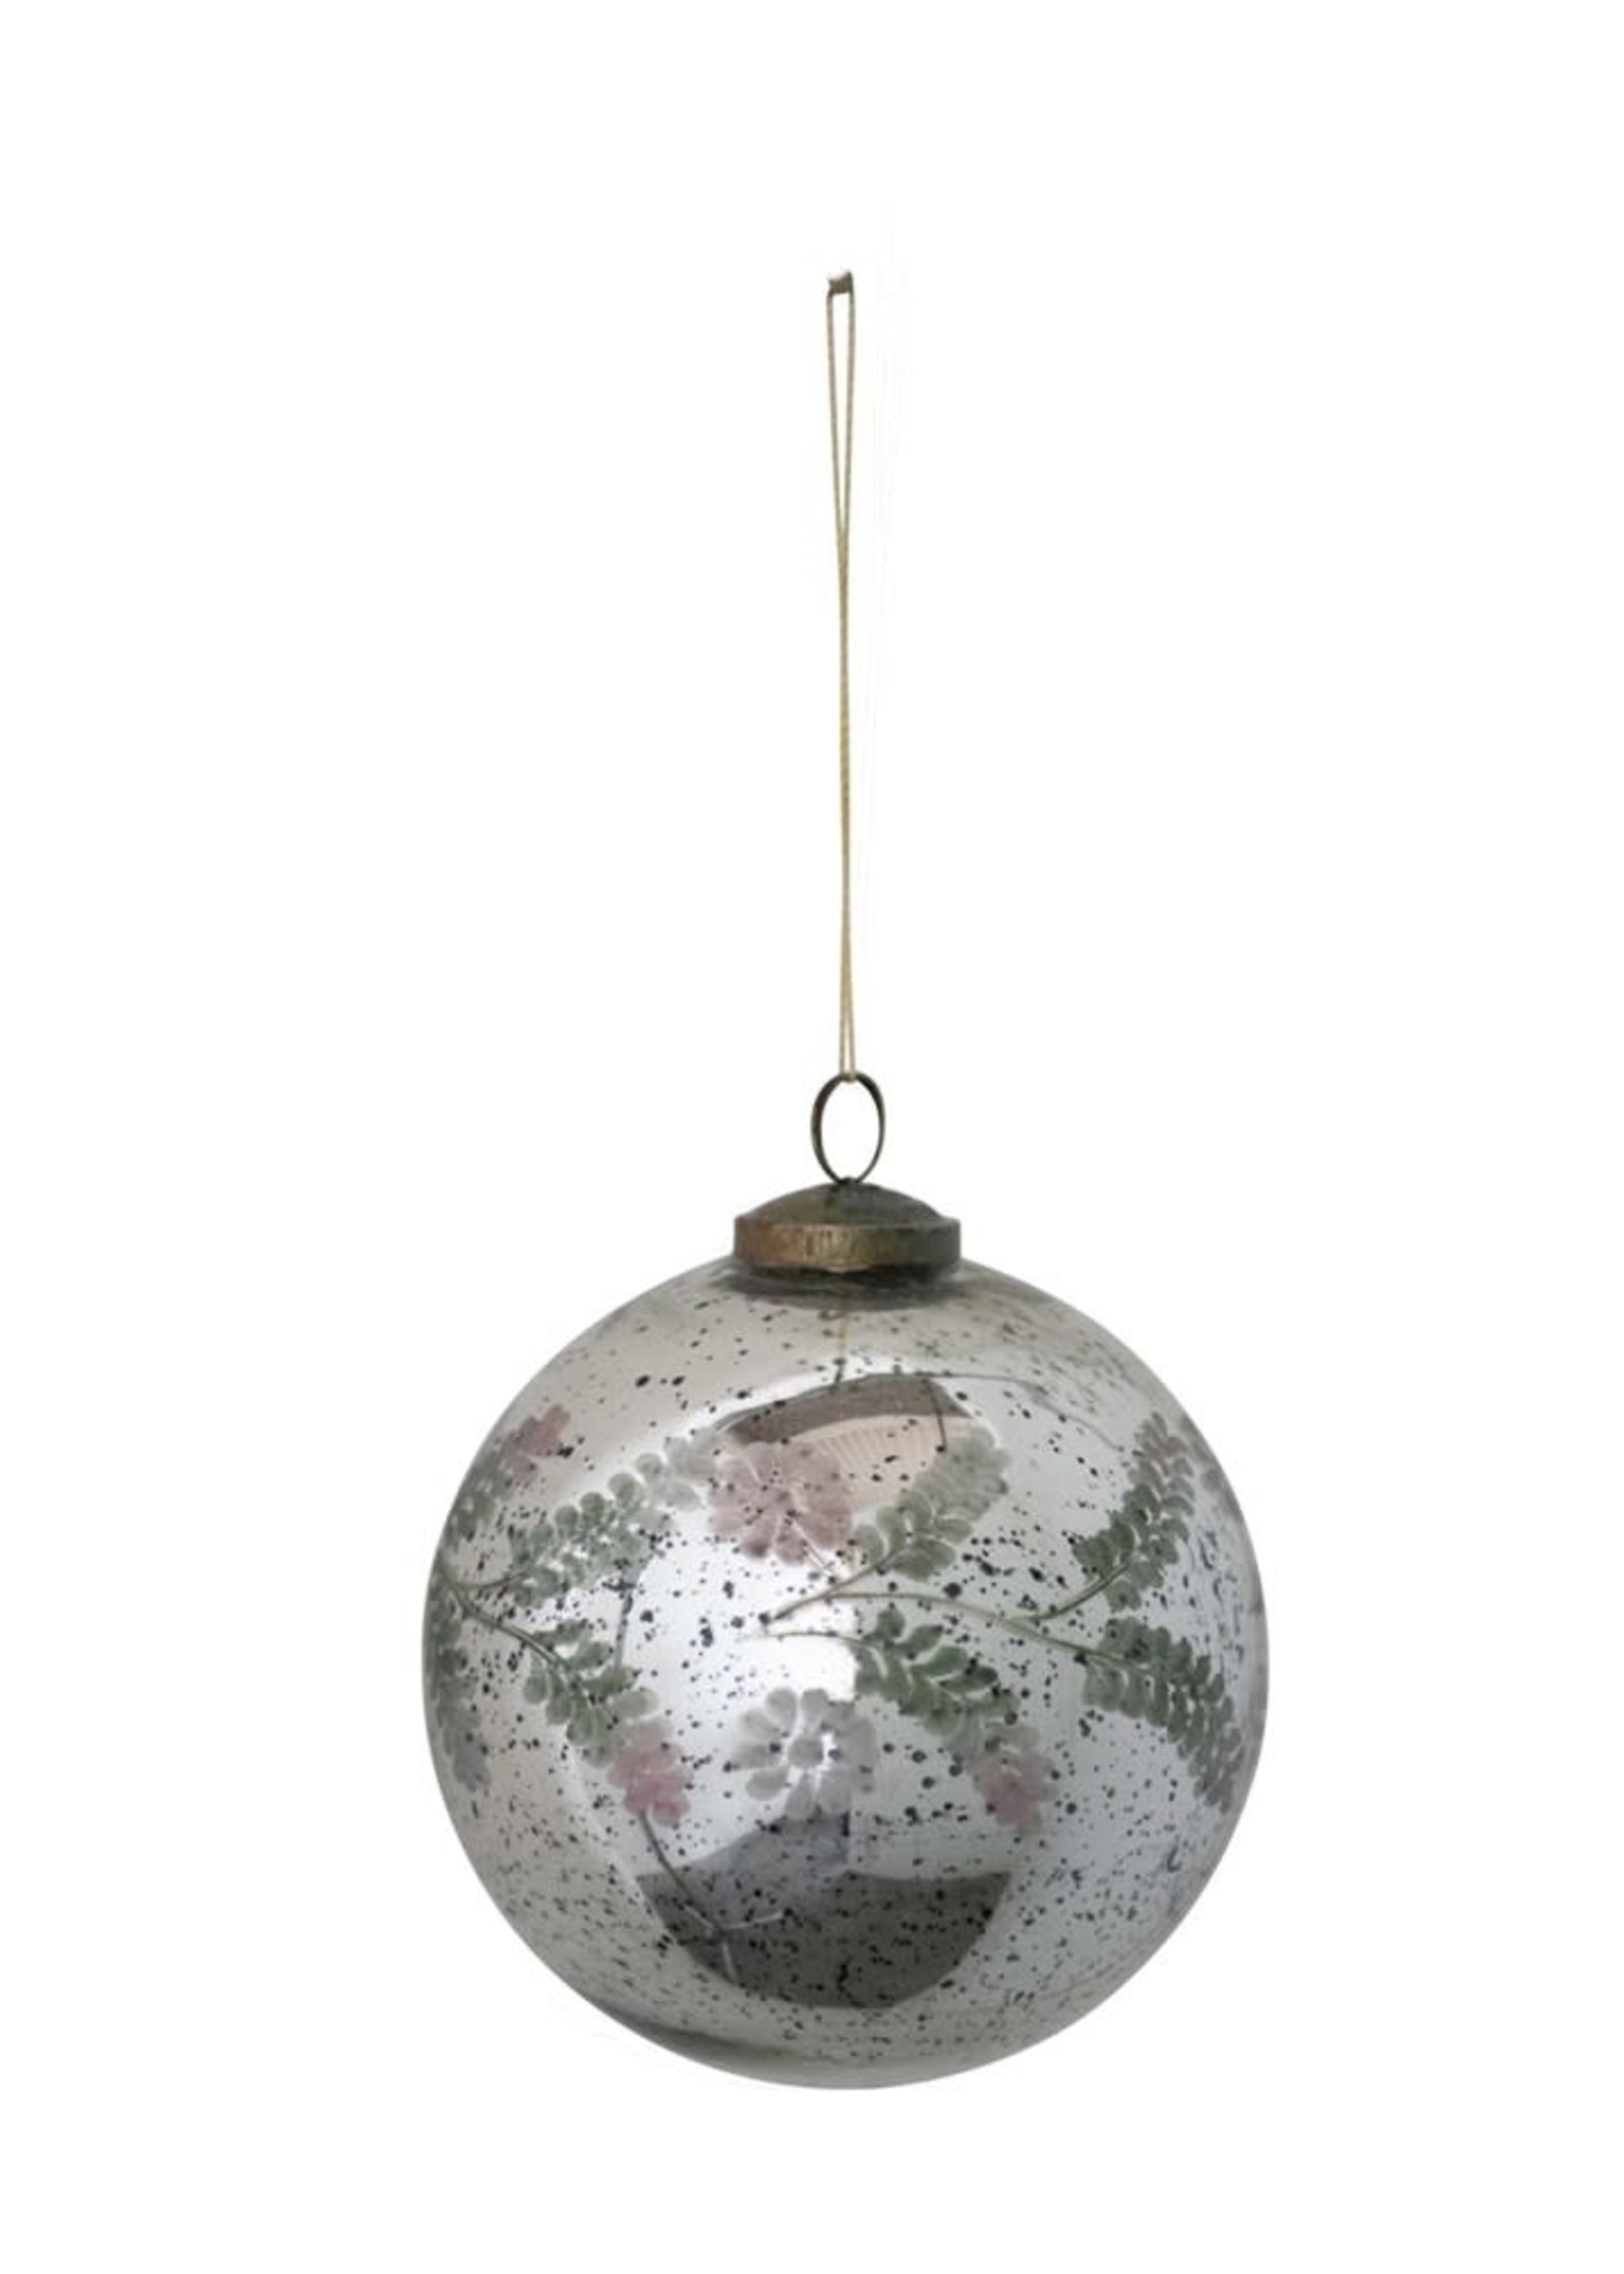 """4"""" Round Etched Mercury Glass Ball Ornament w/ Floral Pattern, Silver, Pink & Green"""